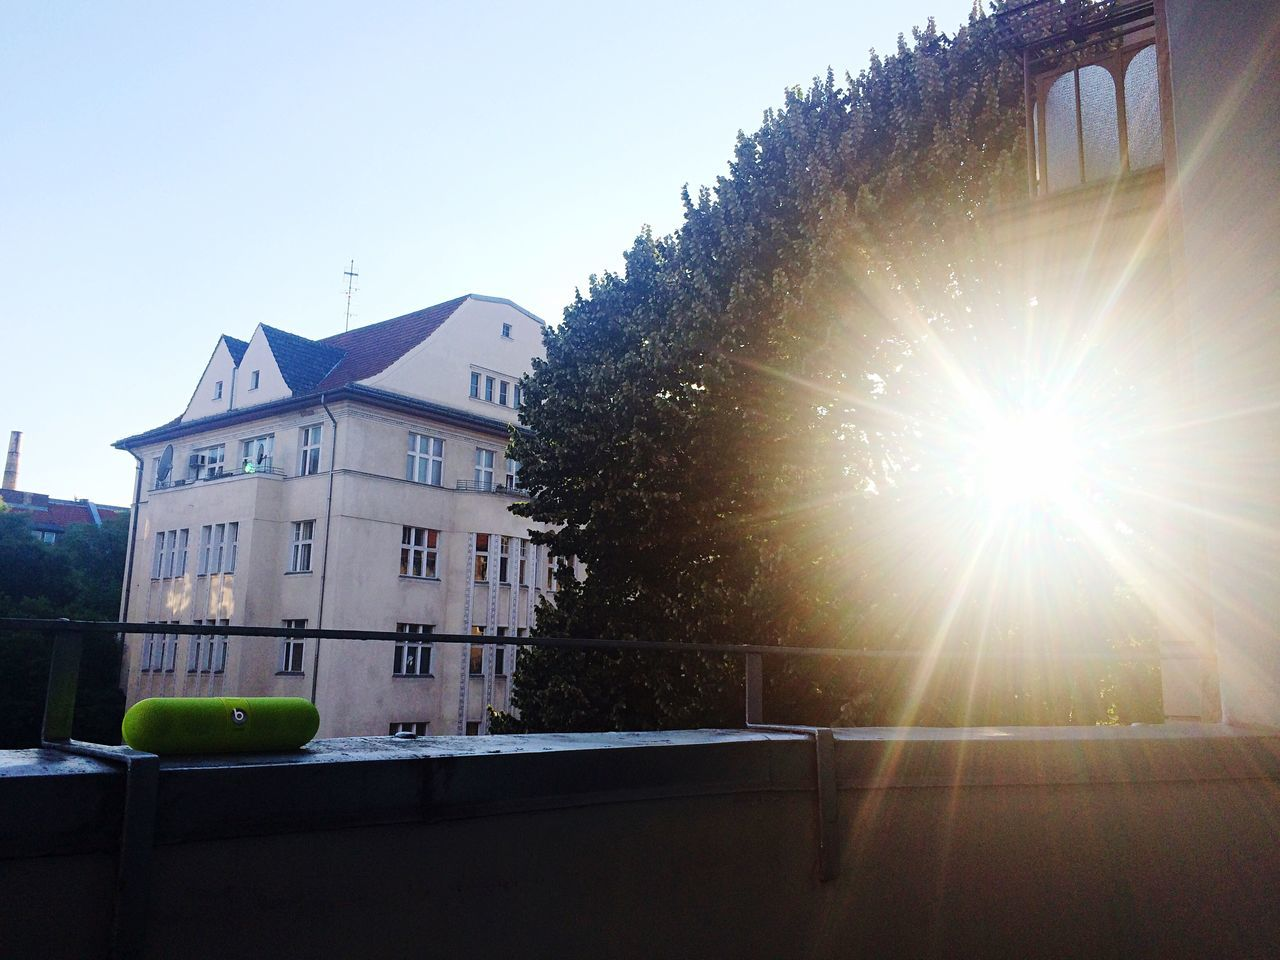 built structure, architecture, sunbeam, sunlight, building exterior, sun, lens flare, tree, no people, day, outdoors, clear sky, low angle view, education, sky, nature, close-up